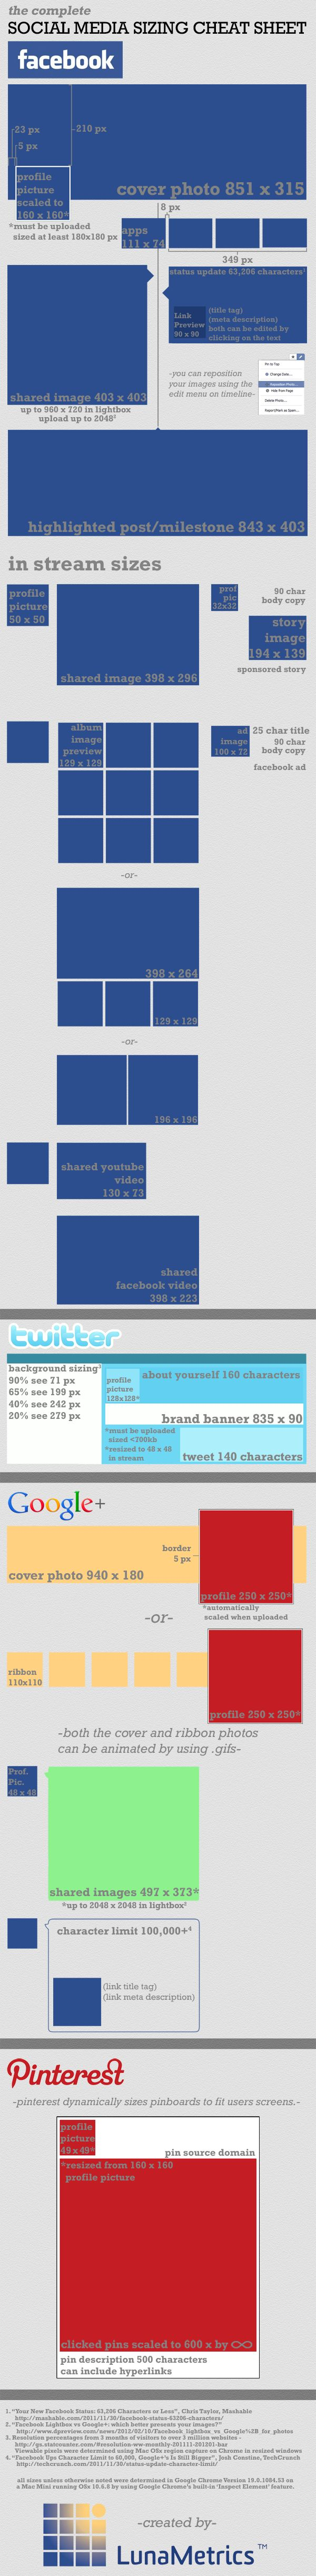 Social Media Image Size Cheat Sheet | Infographic